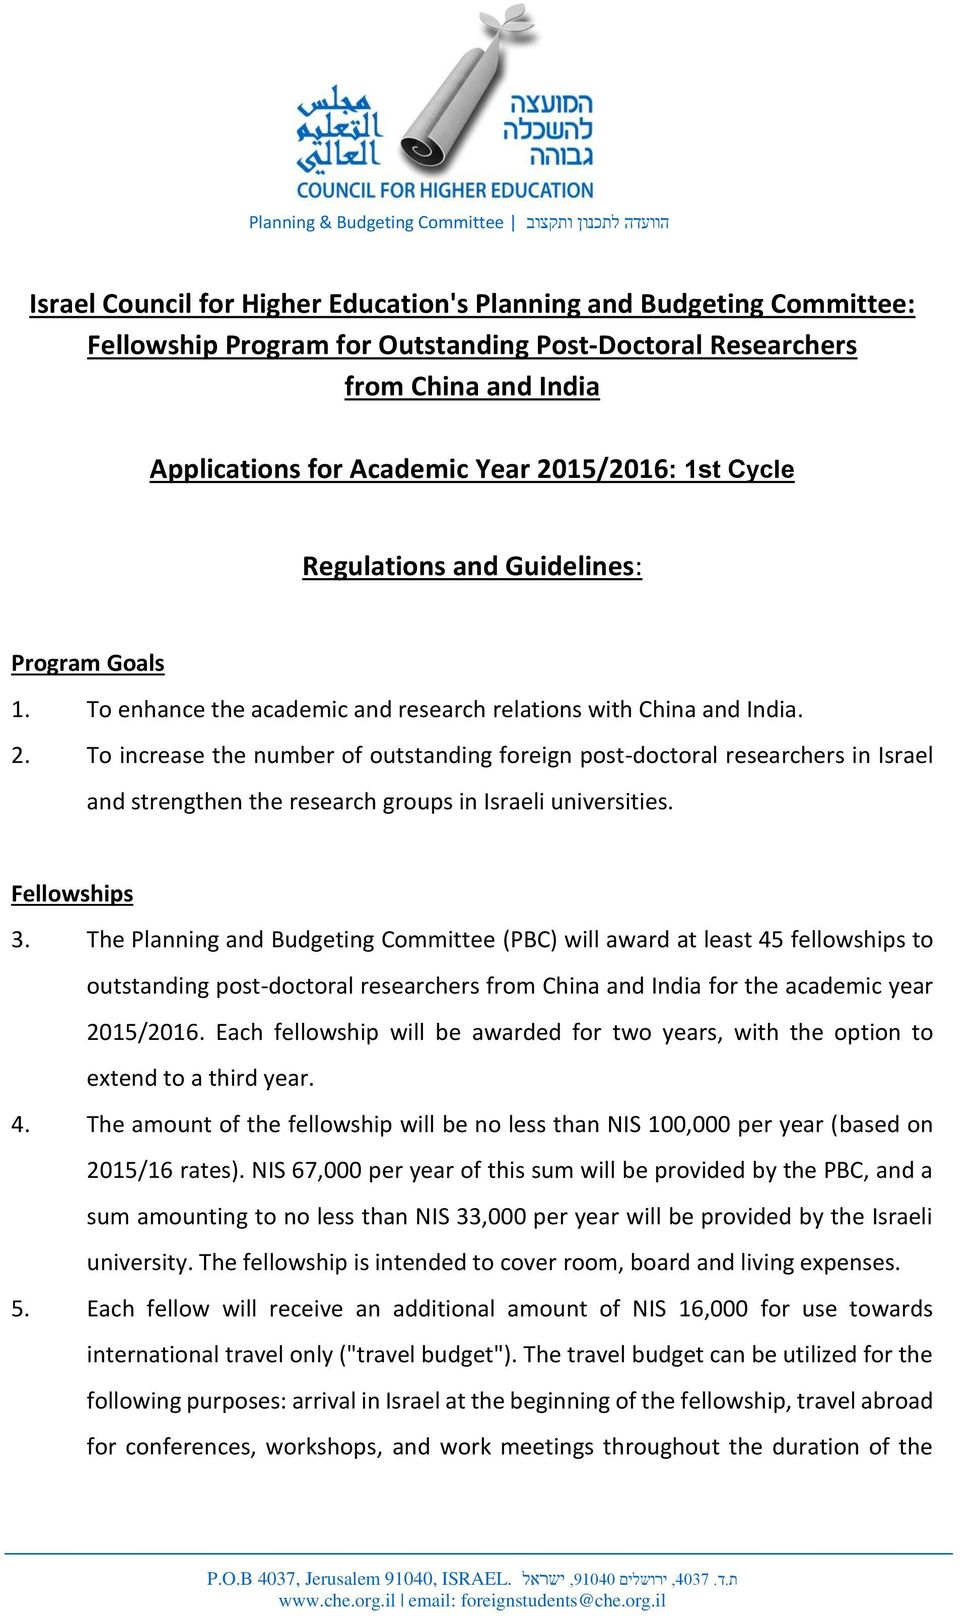 Fellowships 3. The Planning and Budgeting Committee (PBC) will award at least 45 fellowships to outstanding post-doctoral researchers from China and India for the academic year 2015/2016.